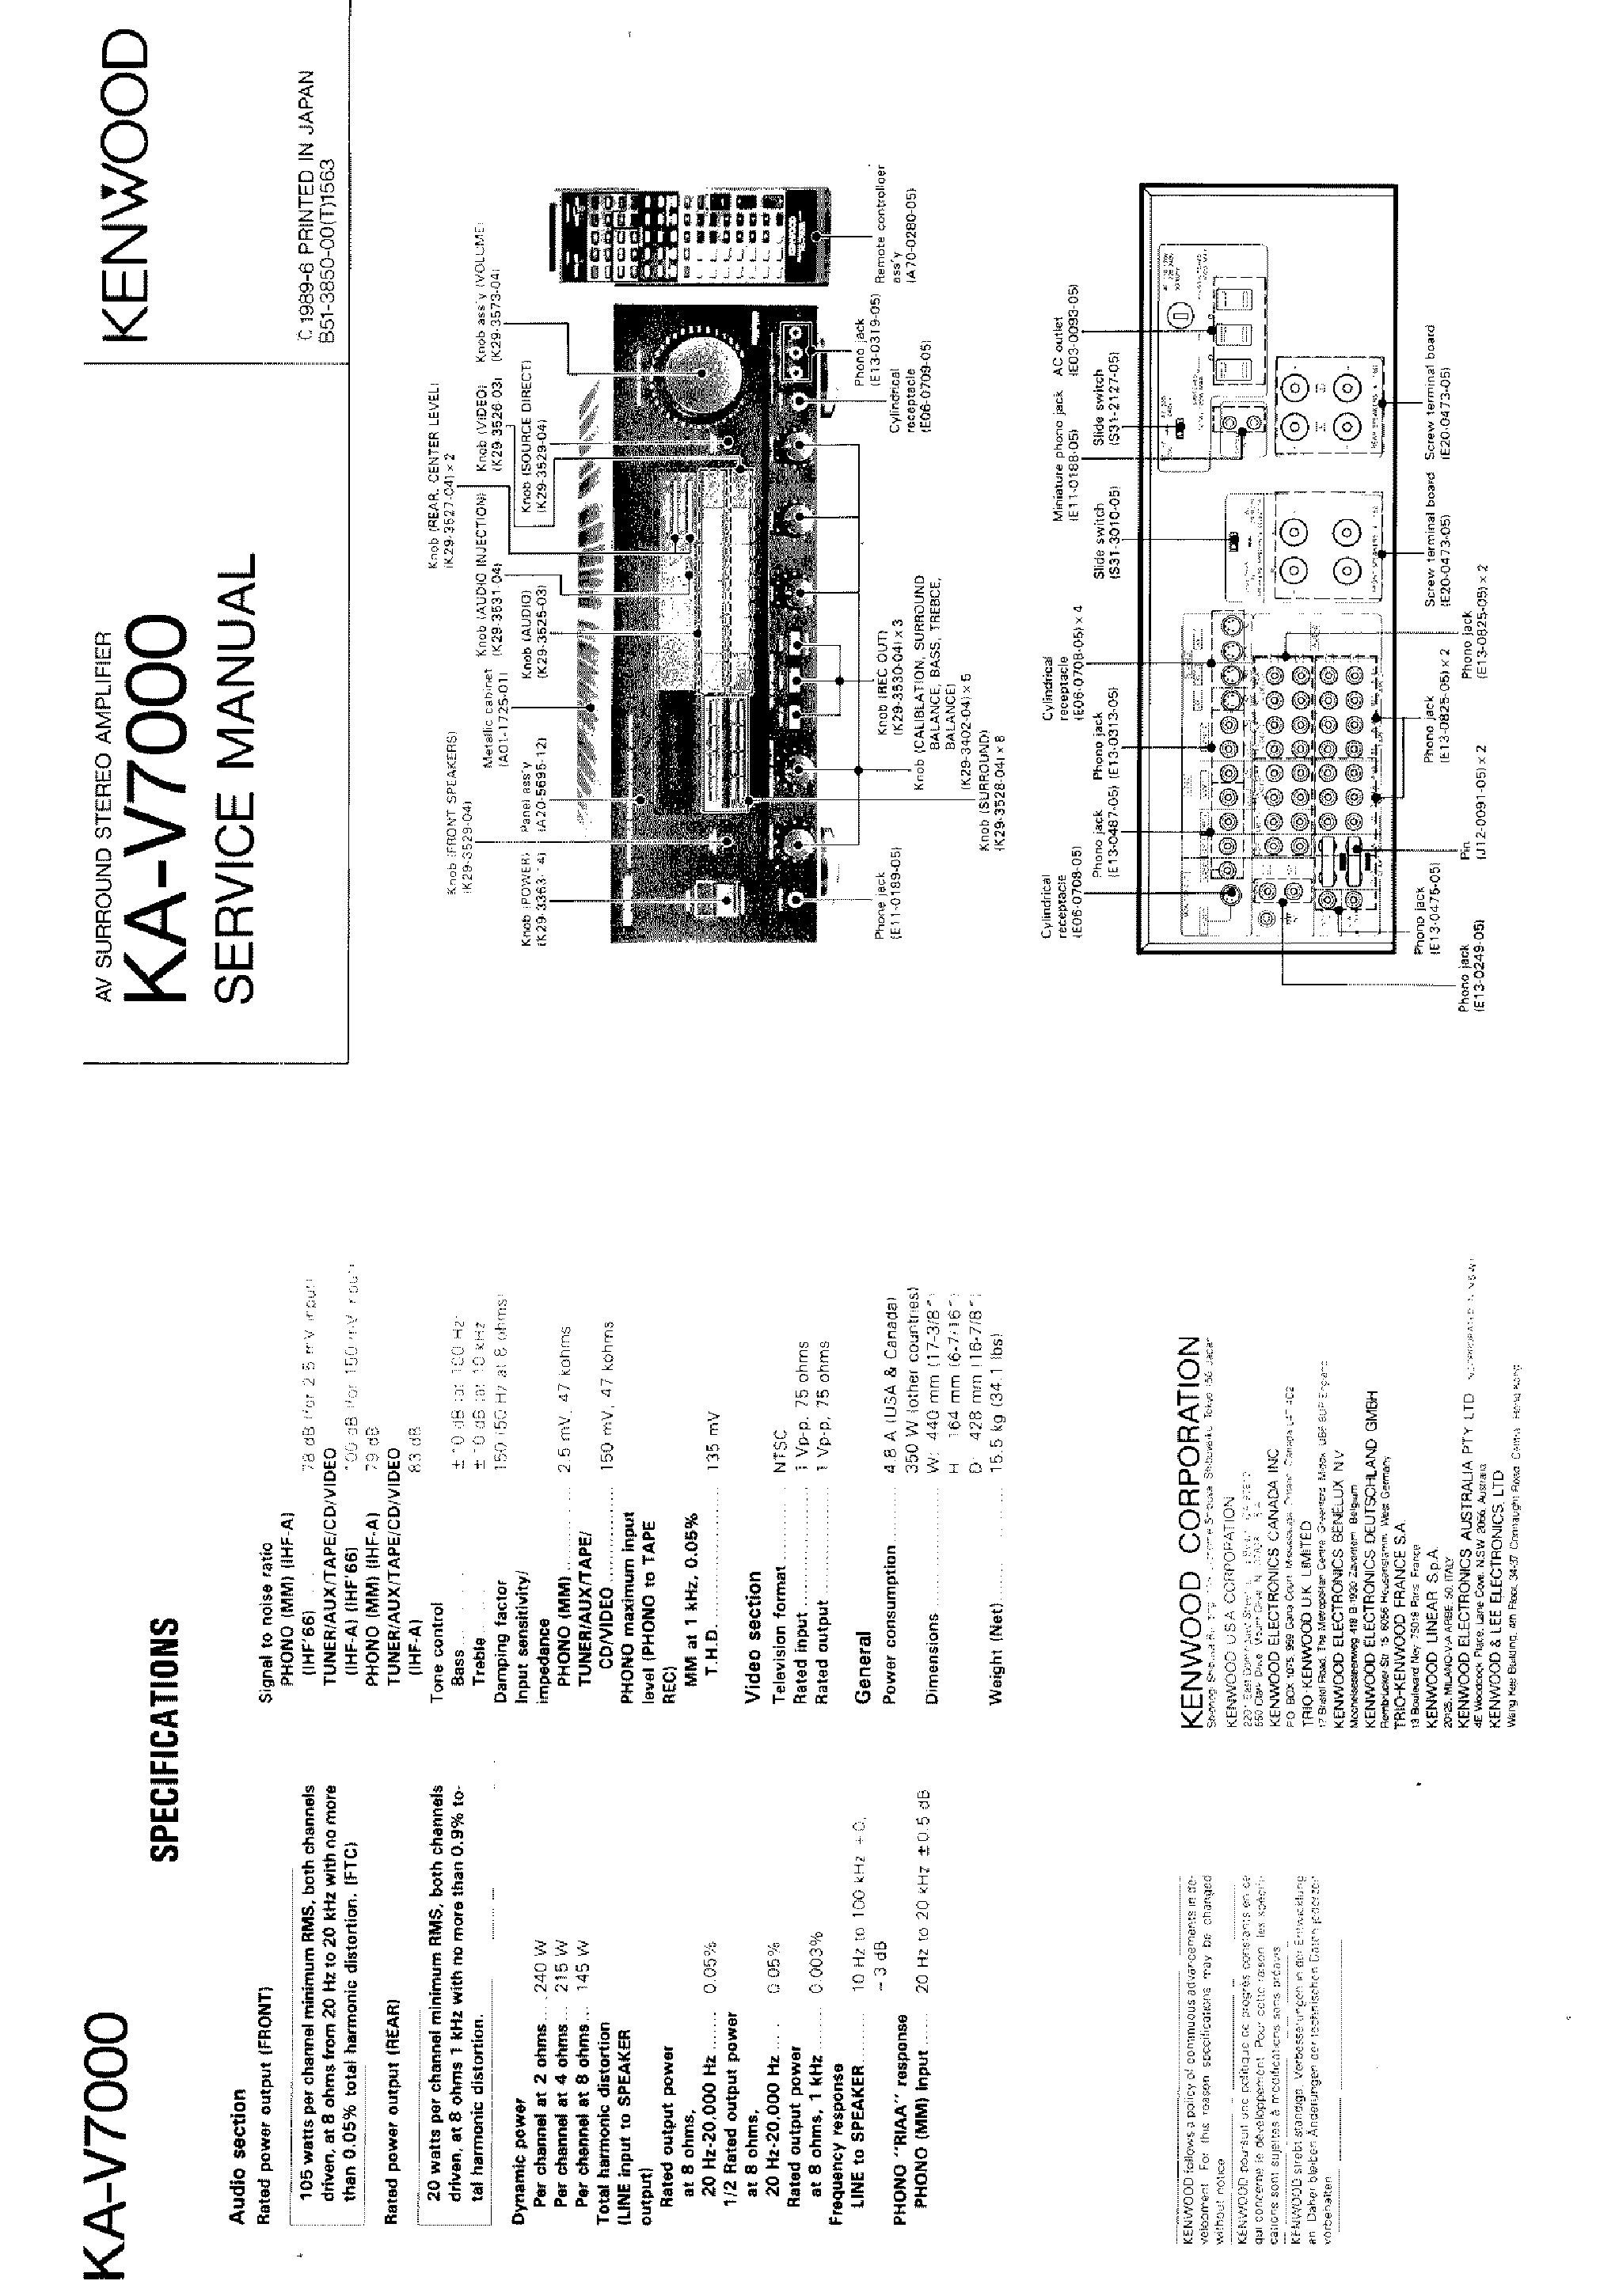 ford 6000 wiring diagram pdf with Kenwood Ka V6000 Manual on Hagstrom Bass Wiring Diagram furthermore 1992 Chevy C6000 Ke Wiring Diagram further Viewtopic besides Q19192063161 Belt Diagram From Mower To John Deere Tractor 112 moreover Norton Core Drill Wiring Diagram.